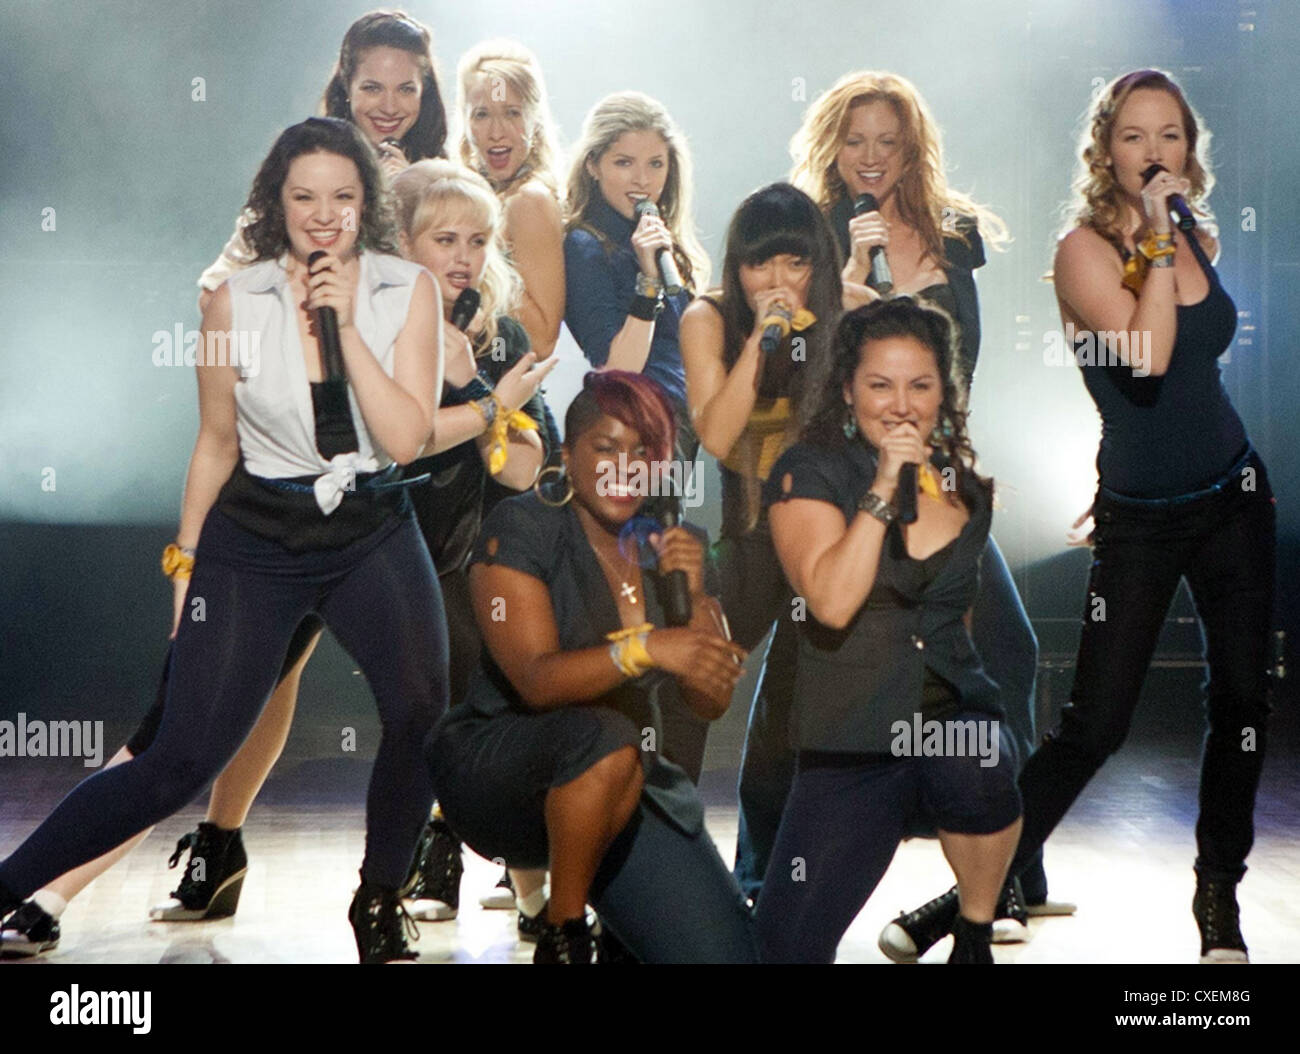 PITCH  PERFECT 2012 Universal musical comedy film - Stock Image